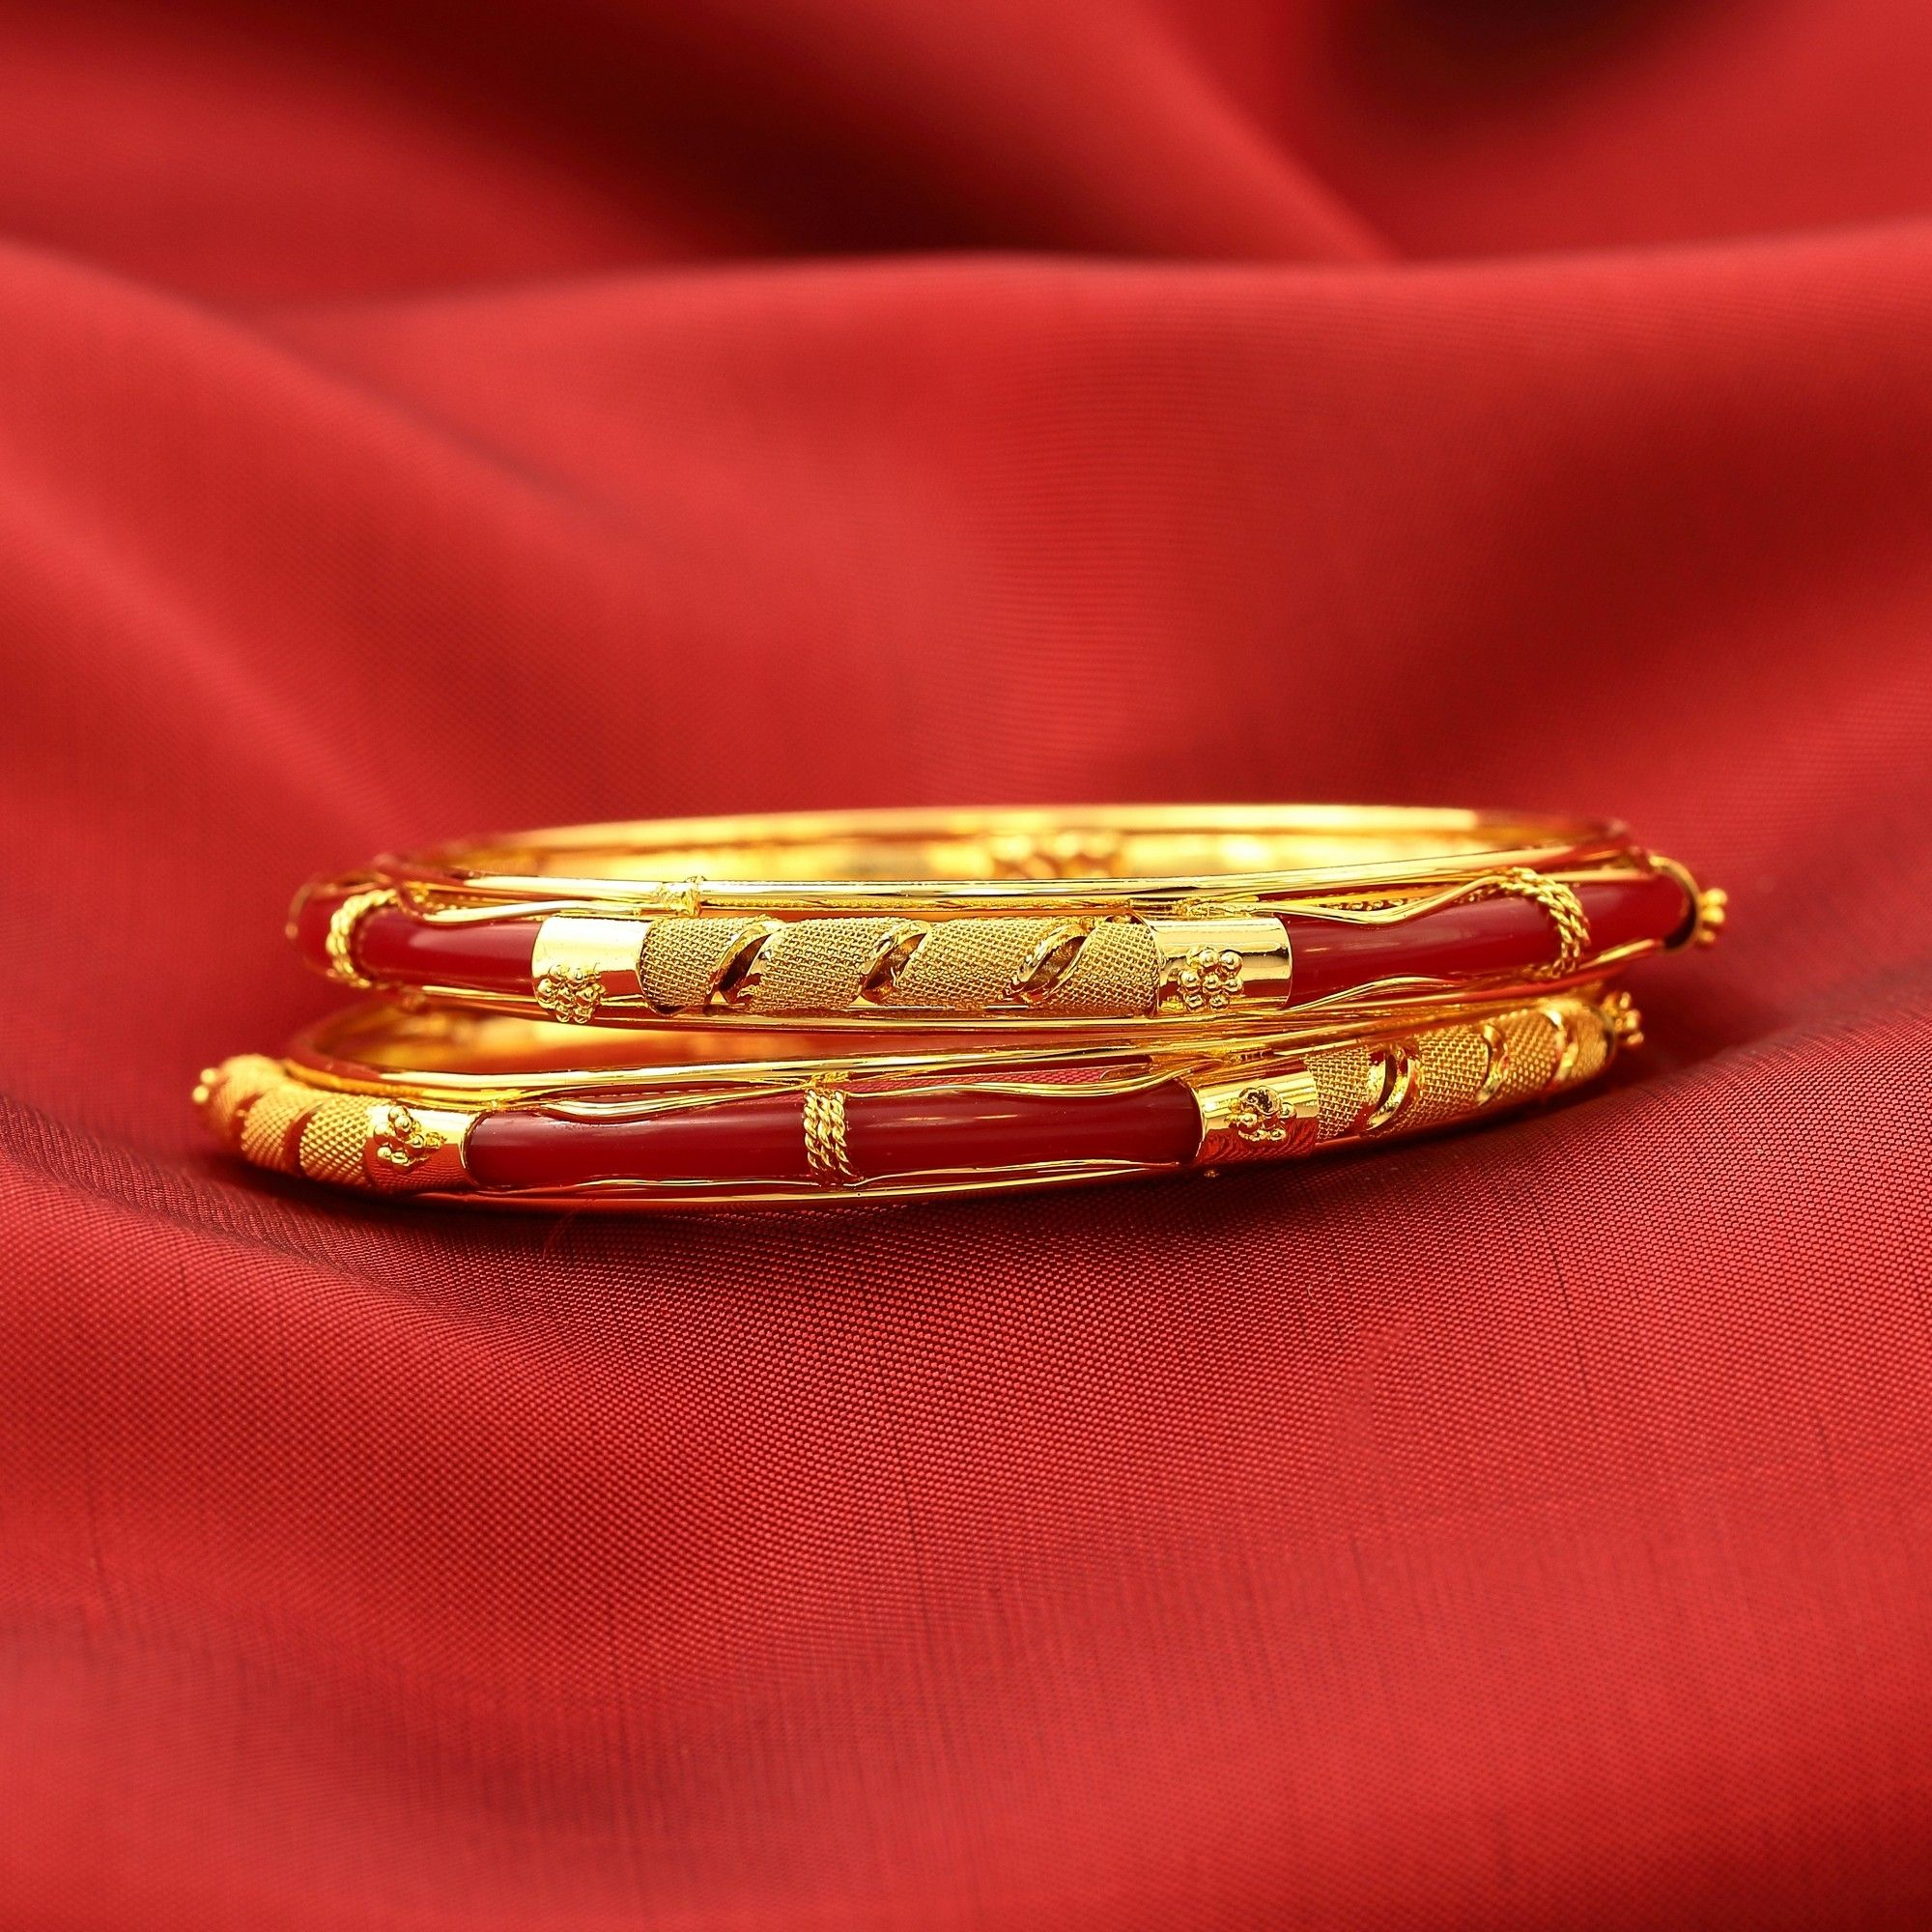 bangle as with design south and for white peacock stones culture indian a designed stone bangles eye small ruby single